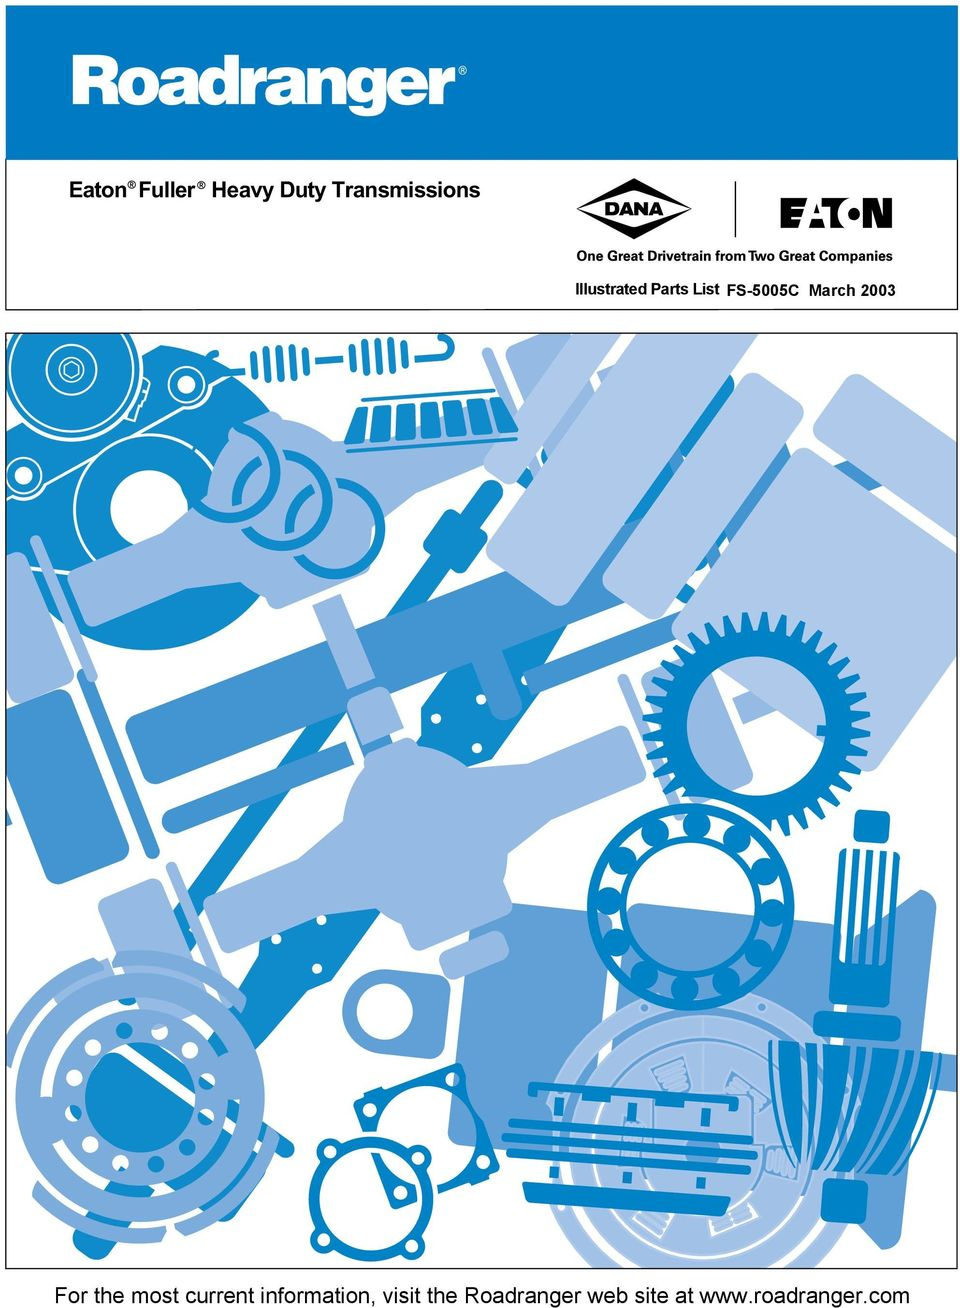 Eaton Fuller Heavy Duty Transmissions Illustrated Parts List